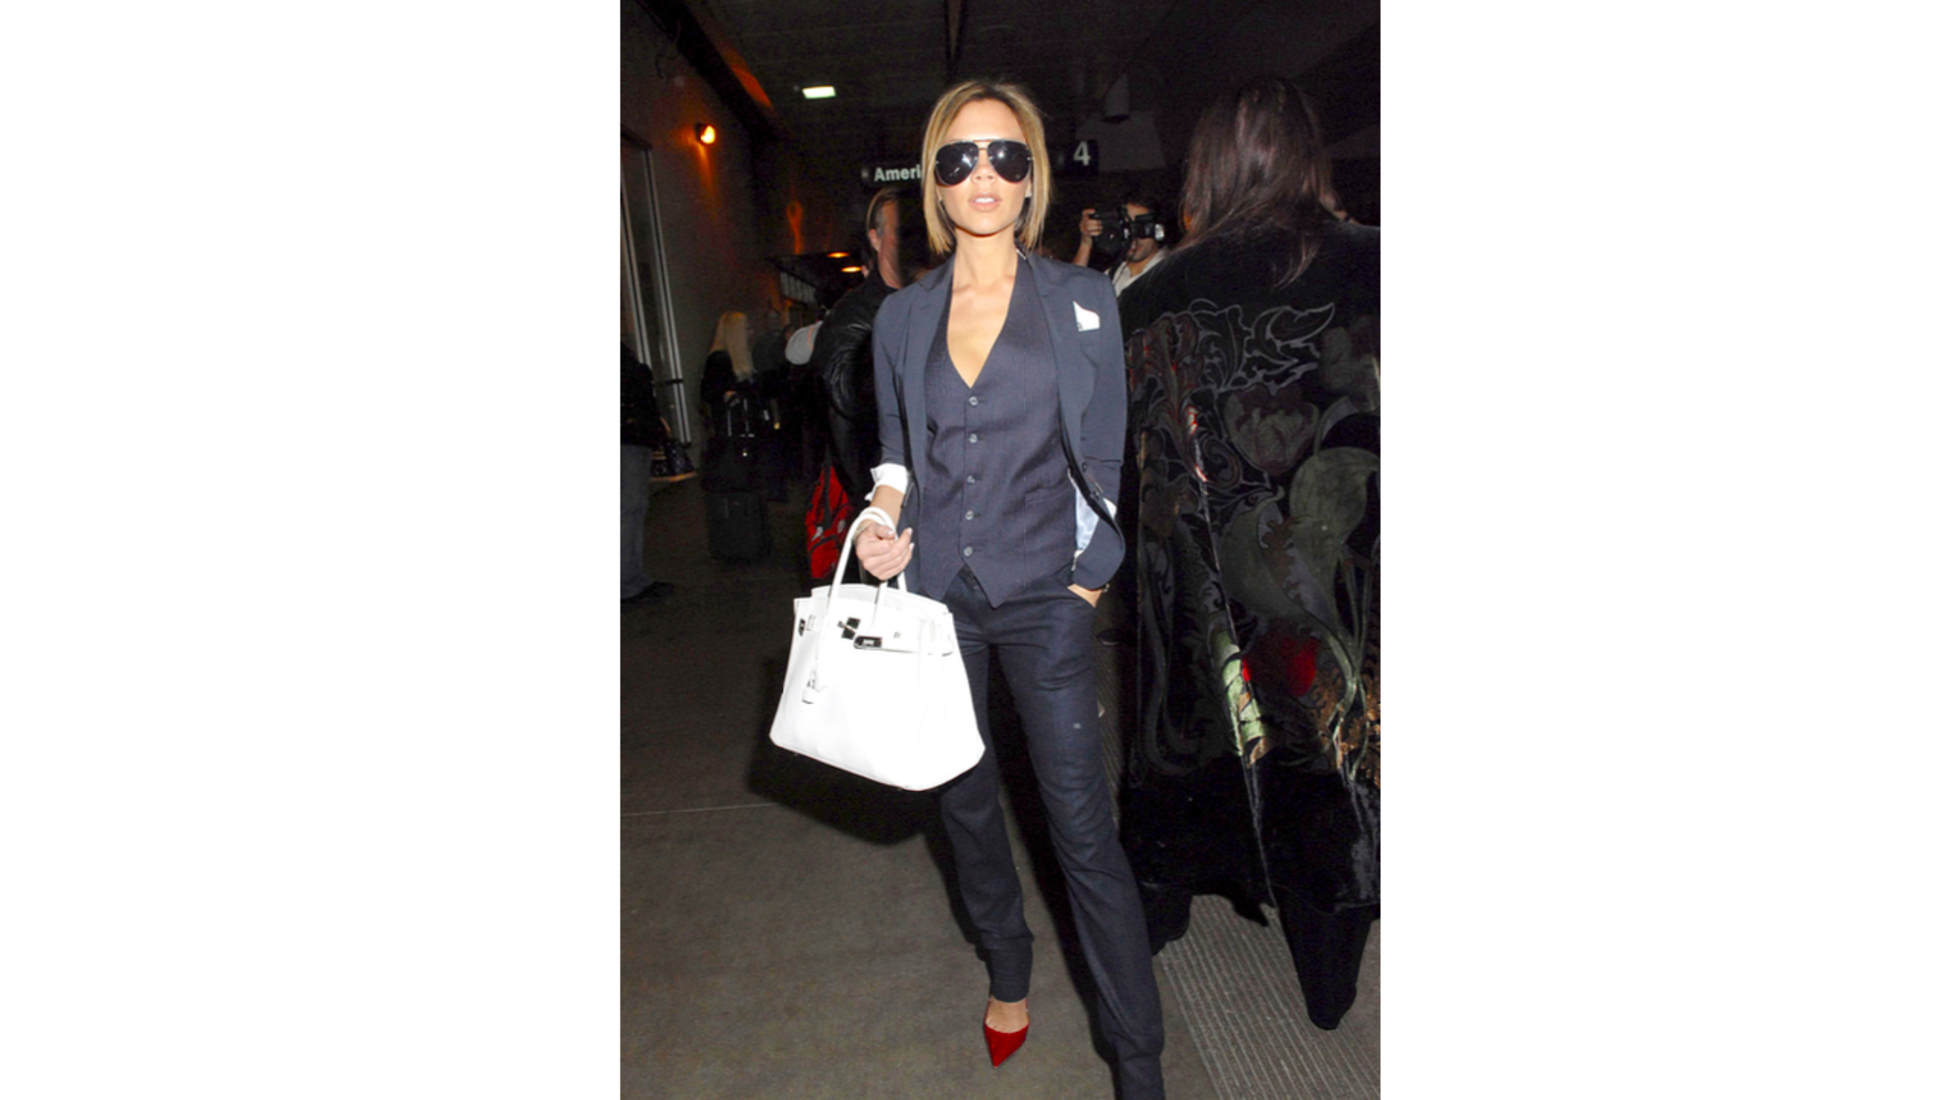 10 Facts About the Hermès Birkin Bag We Bet You Didn't ...